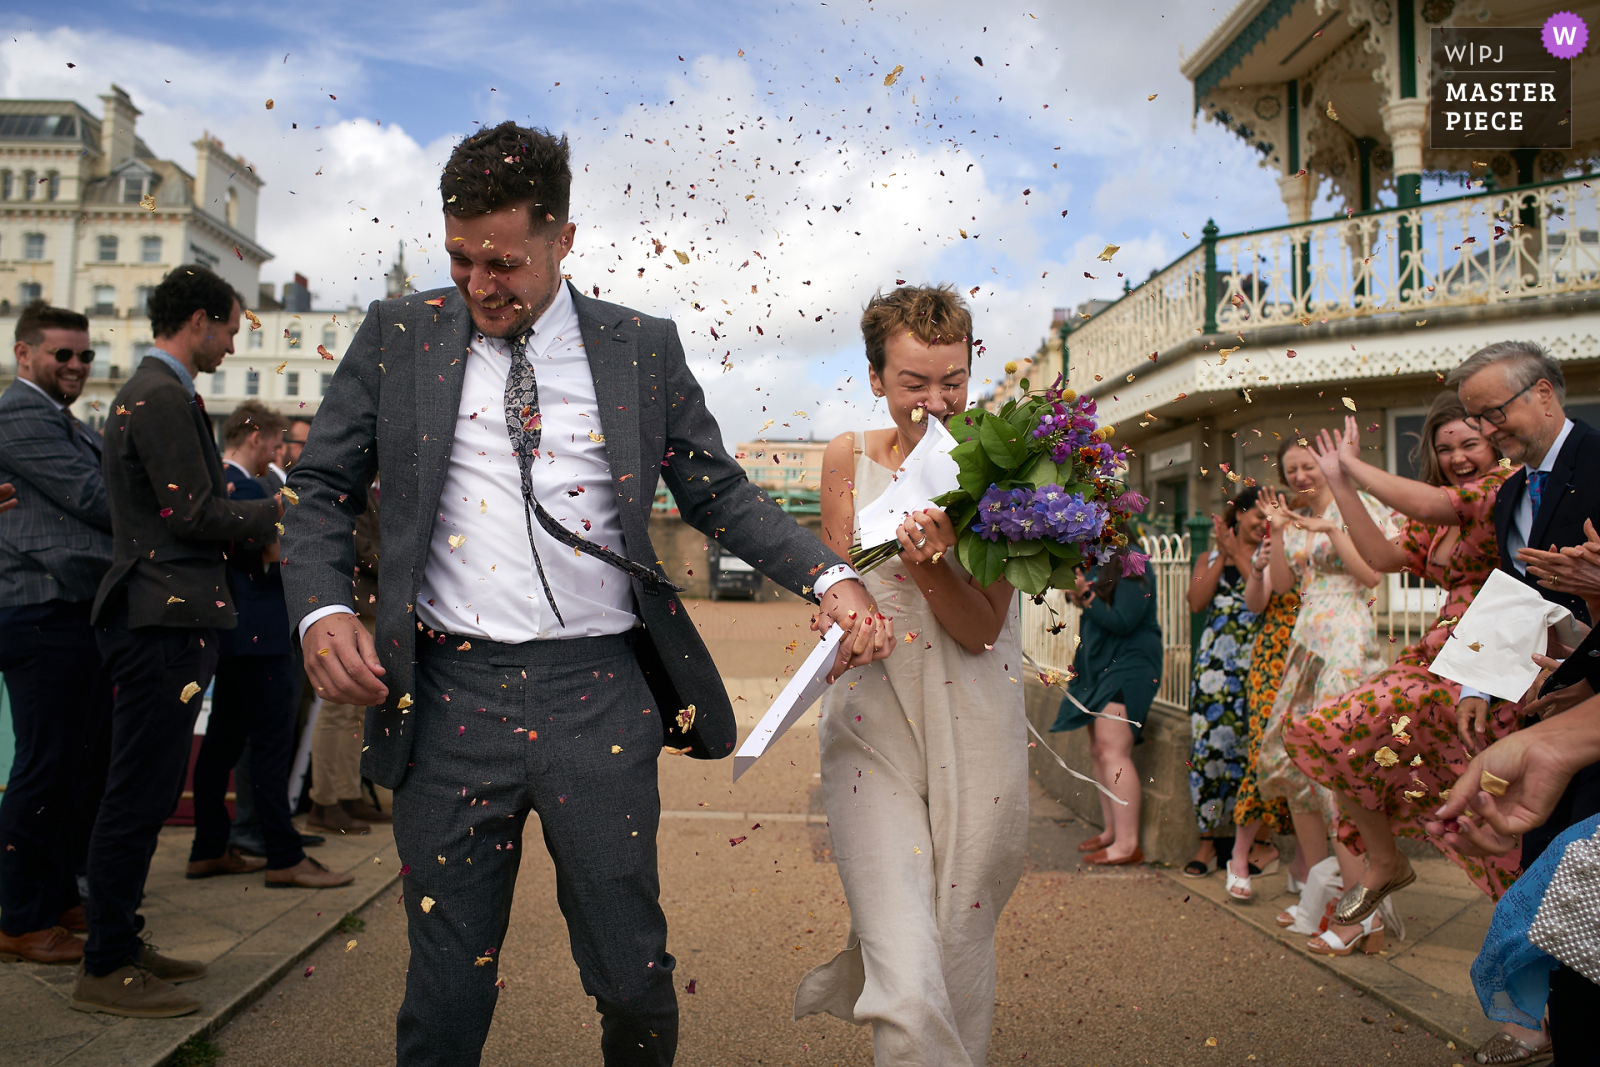 Wedding photography award Brighton bandstand wedding